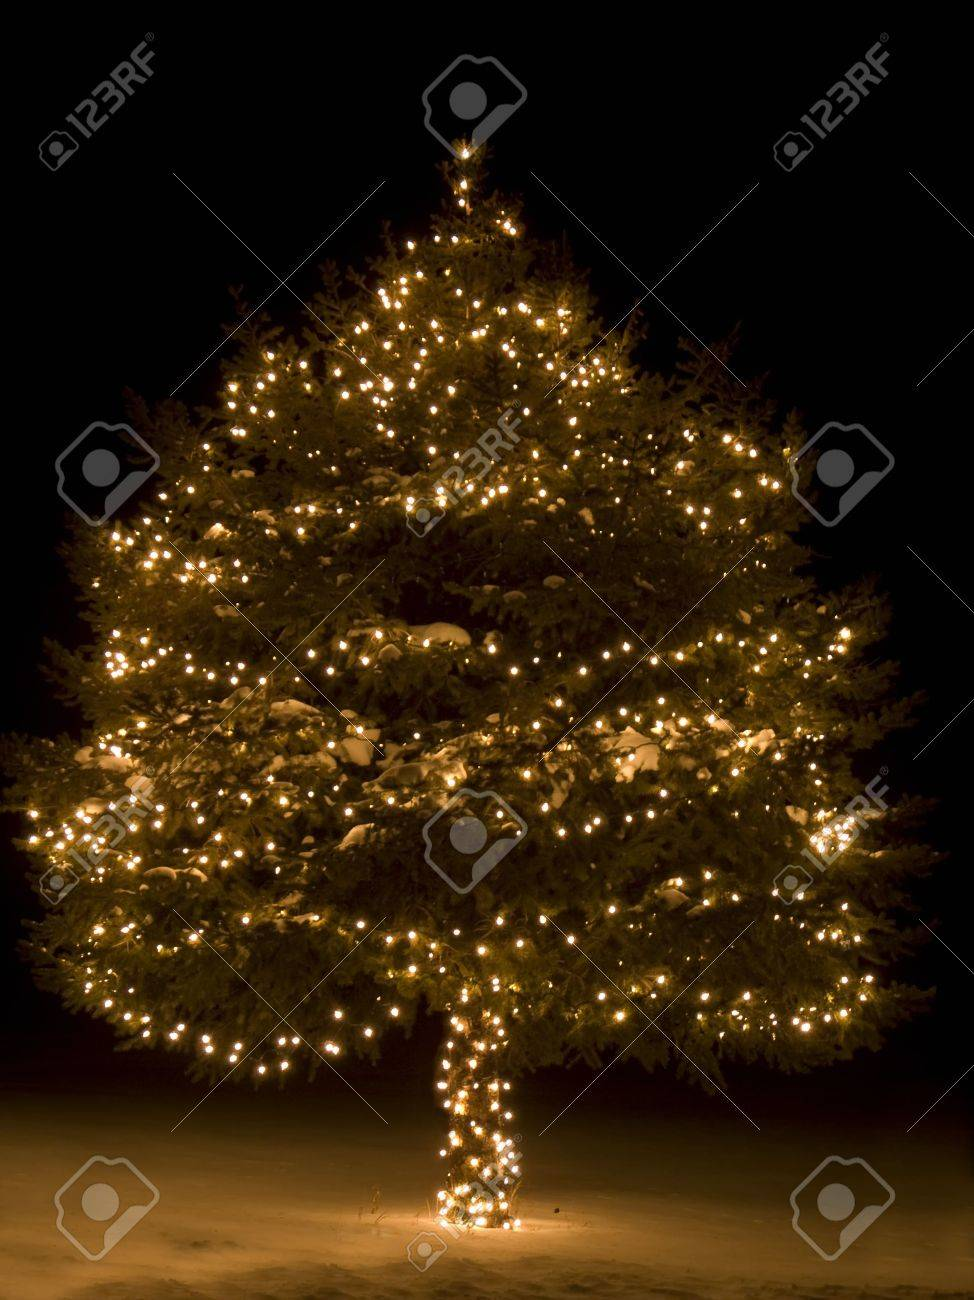 Lit Up Christmas Tree Outside In The Snow Stock Photo, Picture And ...